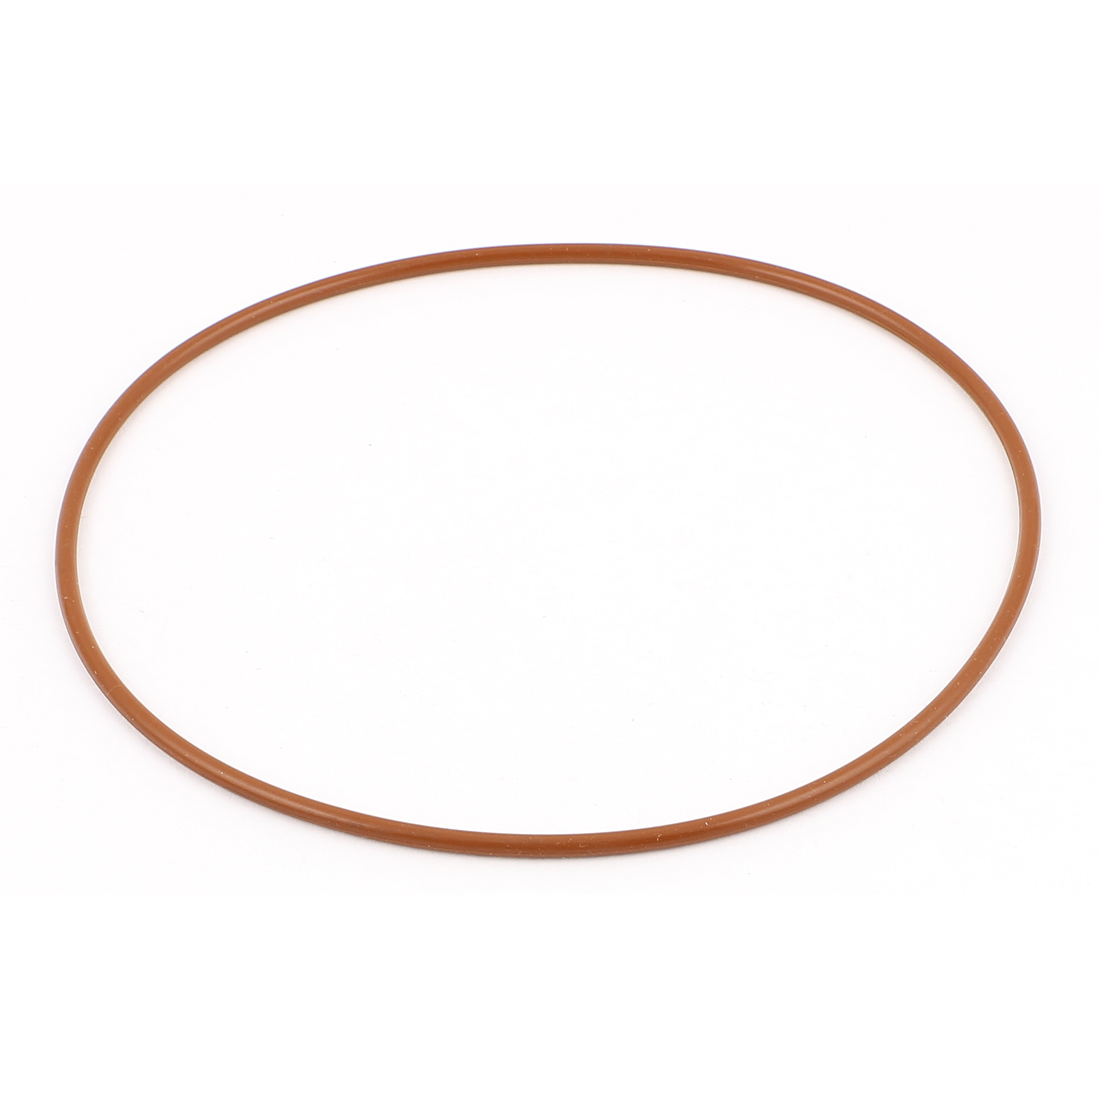 Rubber 155mm x 149mm x 3.5mm Oil Seal O Rings Gaskets Washers Brick Red